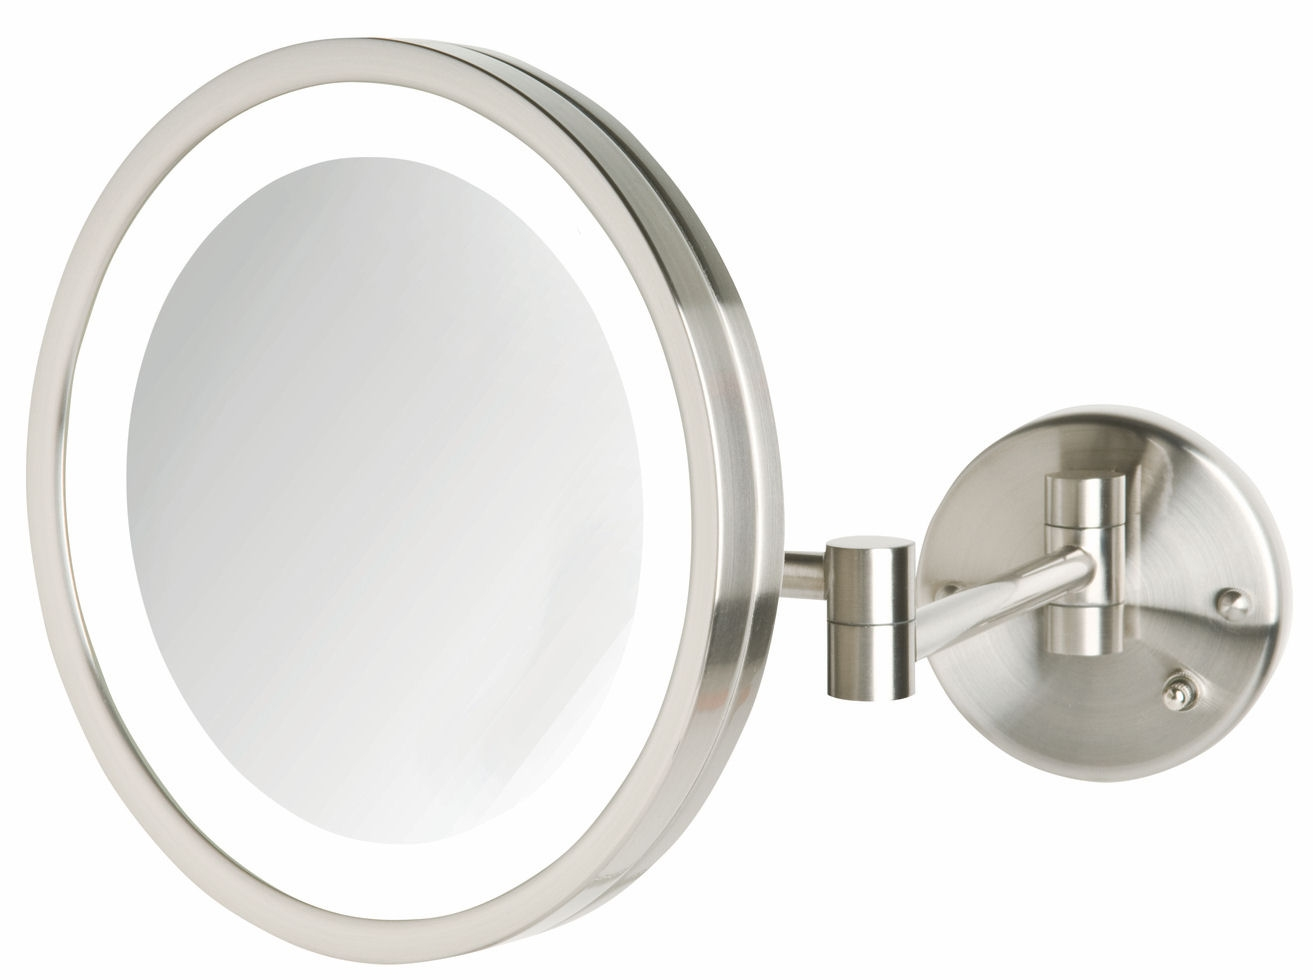 Permalink to Wall Mount Lighted Mirror 10x